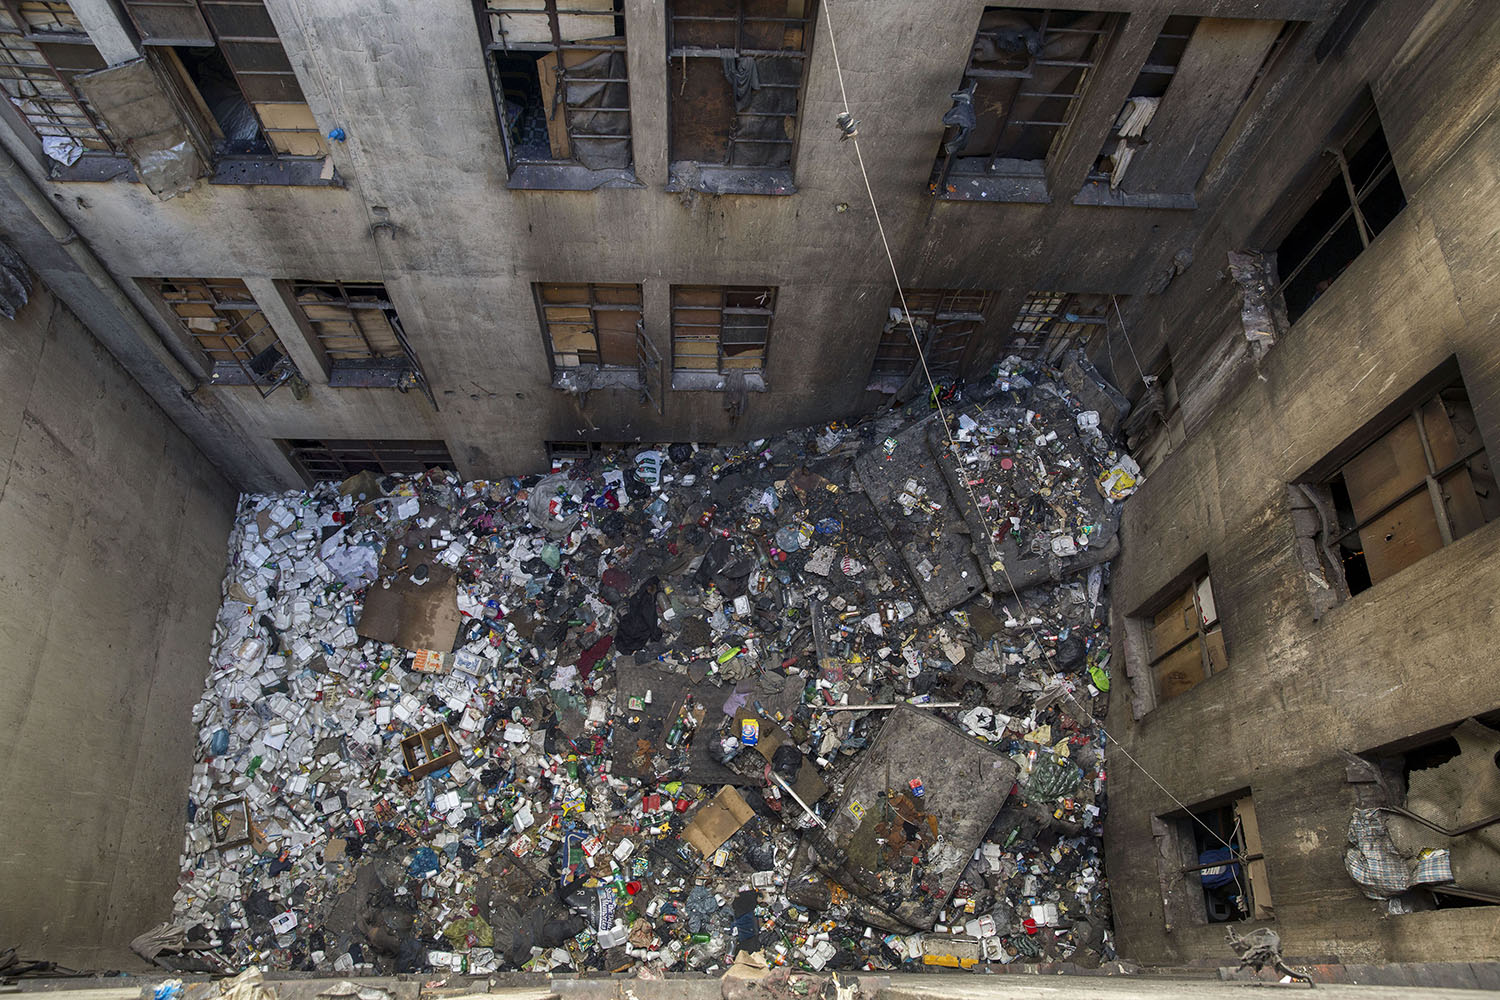 Aerial view of the rubbish-filled courtyard at one of the derelict 'hijacked' buildings, Aug. 2, 2015.